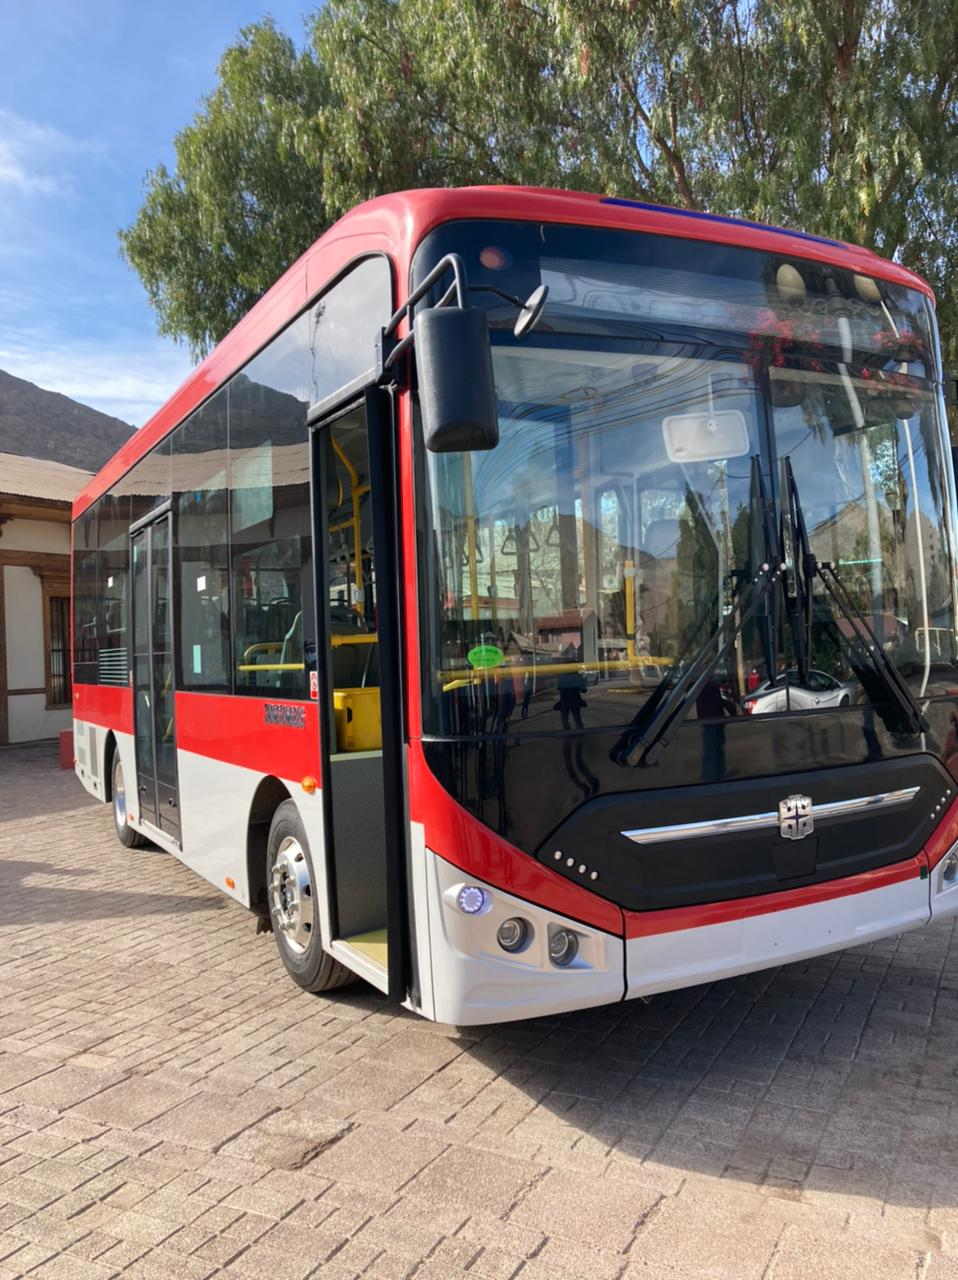 Chile to tender purchase of 100 electric buses for Copiapó